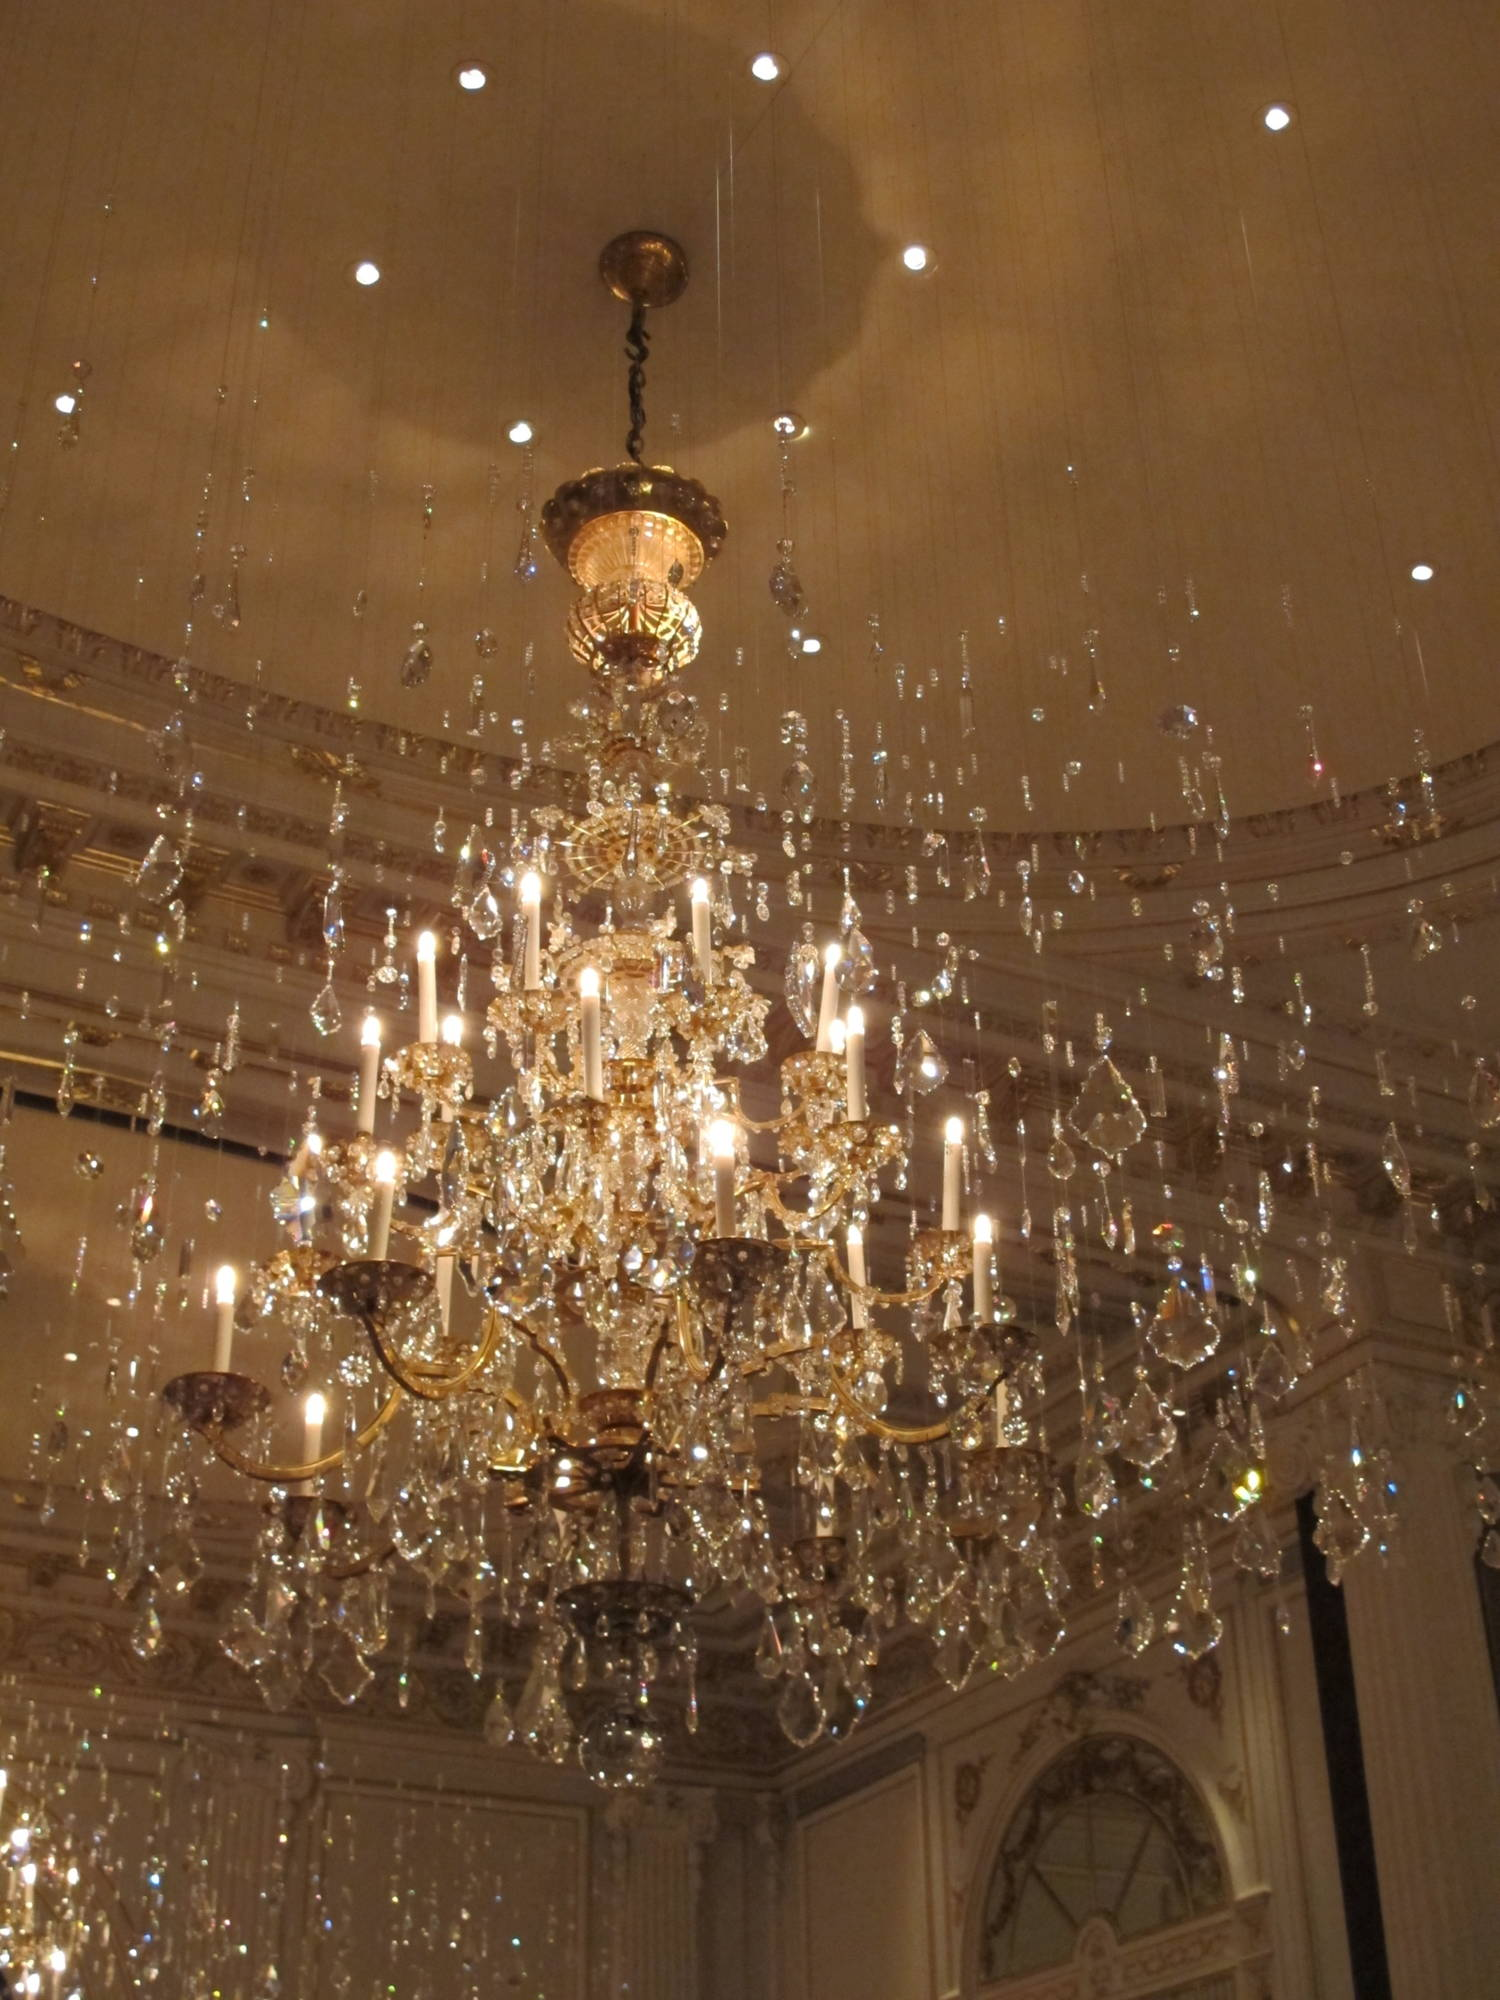 A photograph of a crystal chandelier